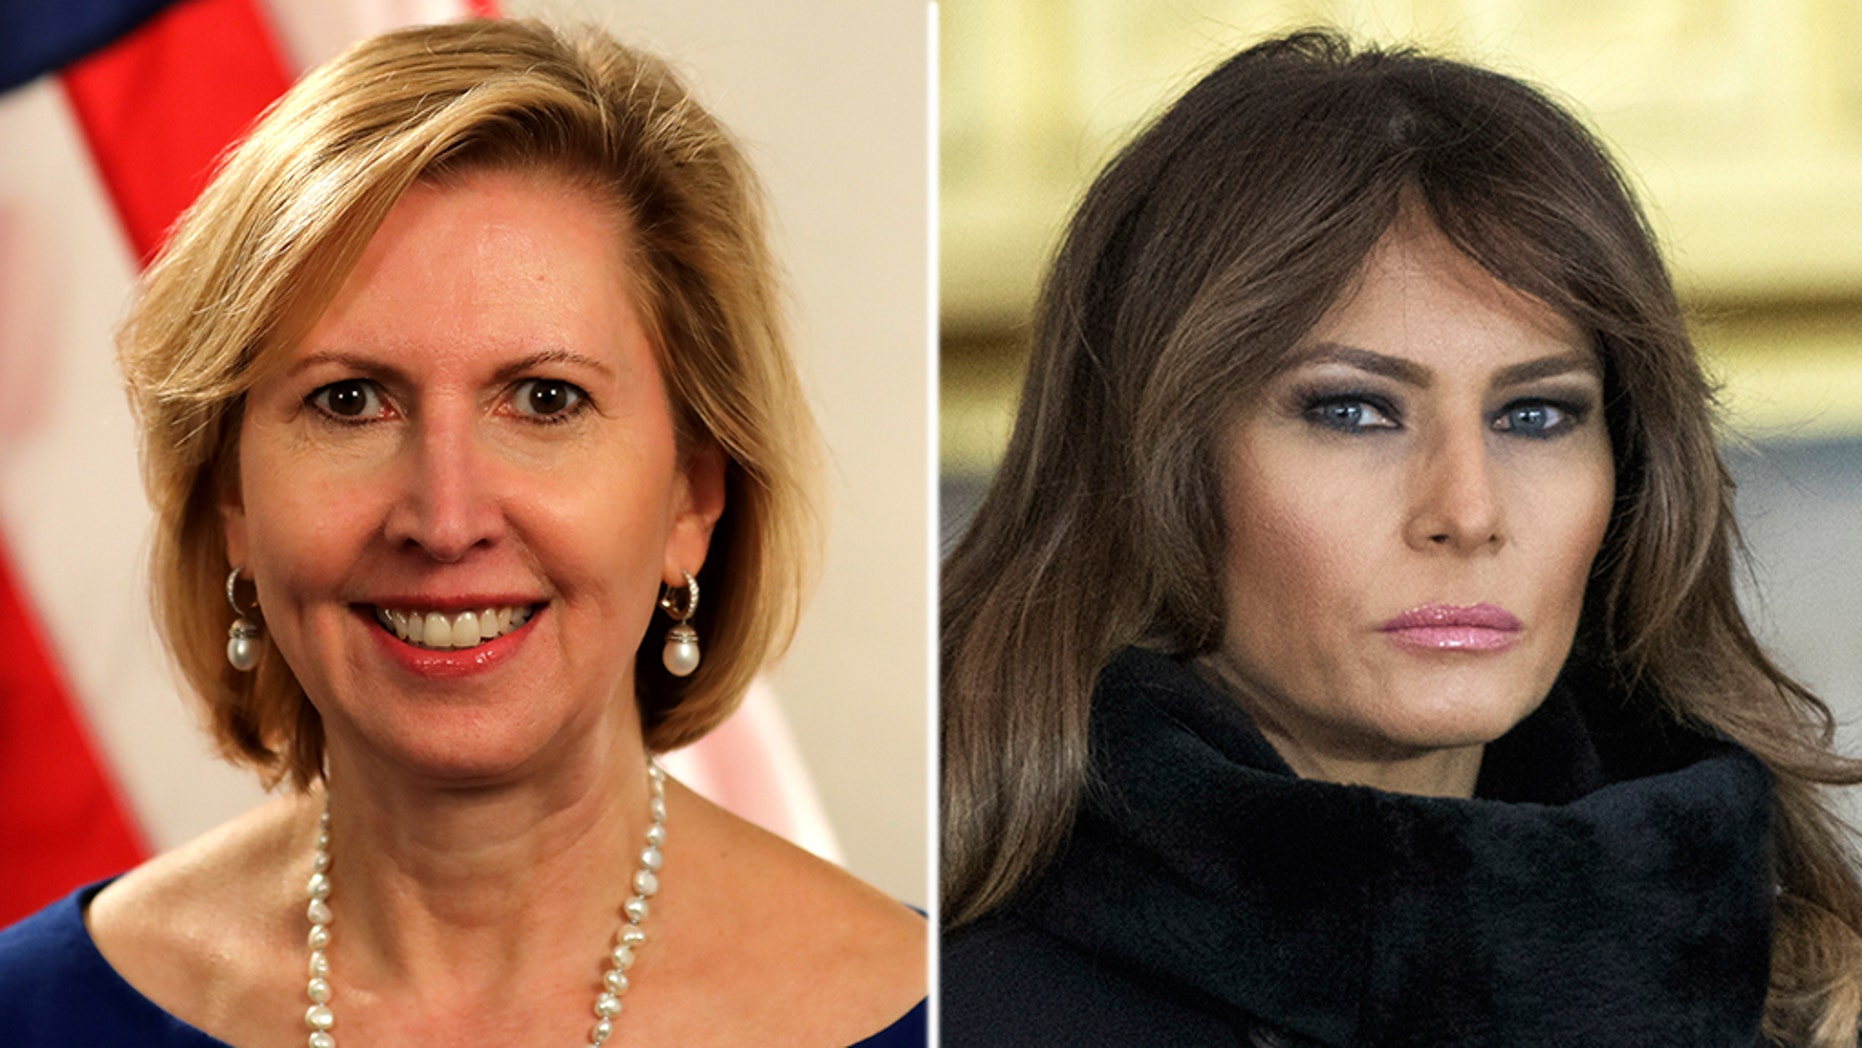 Top Trump national security adviser fired after feud with Melania